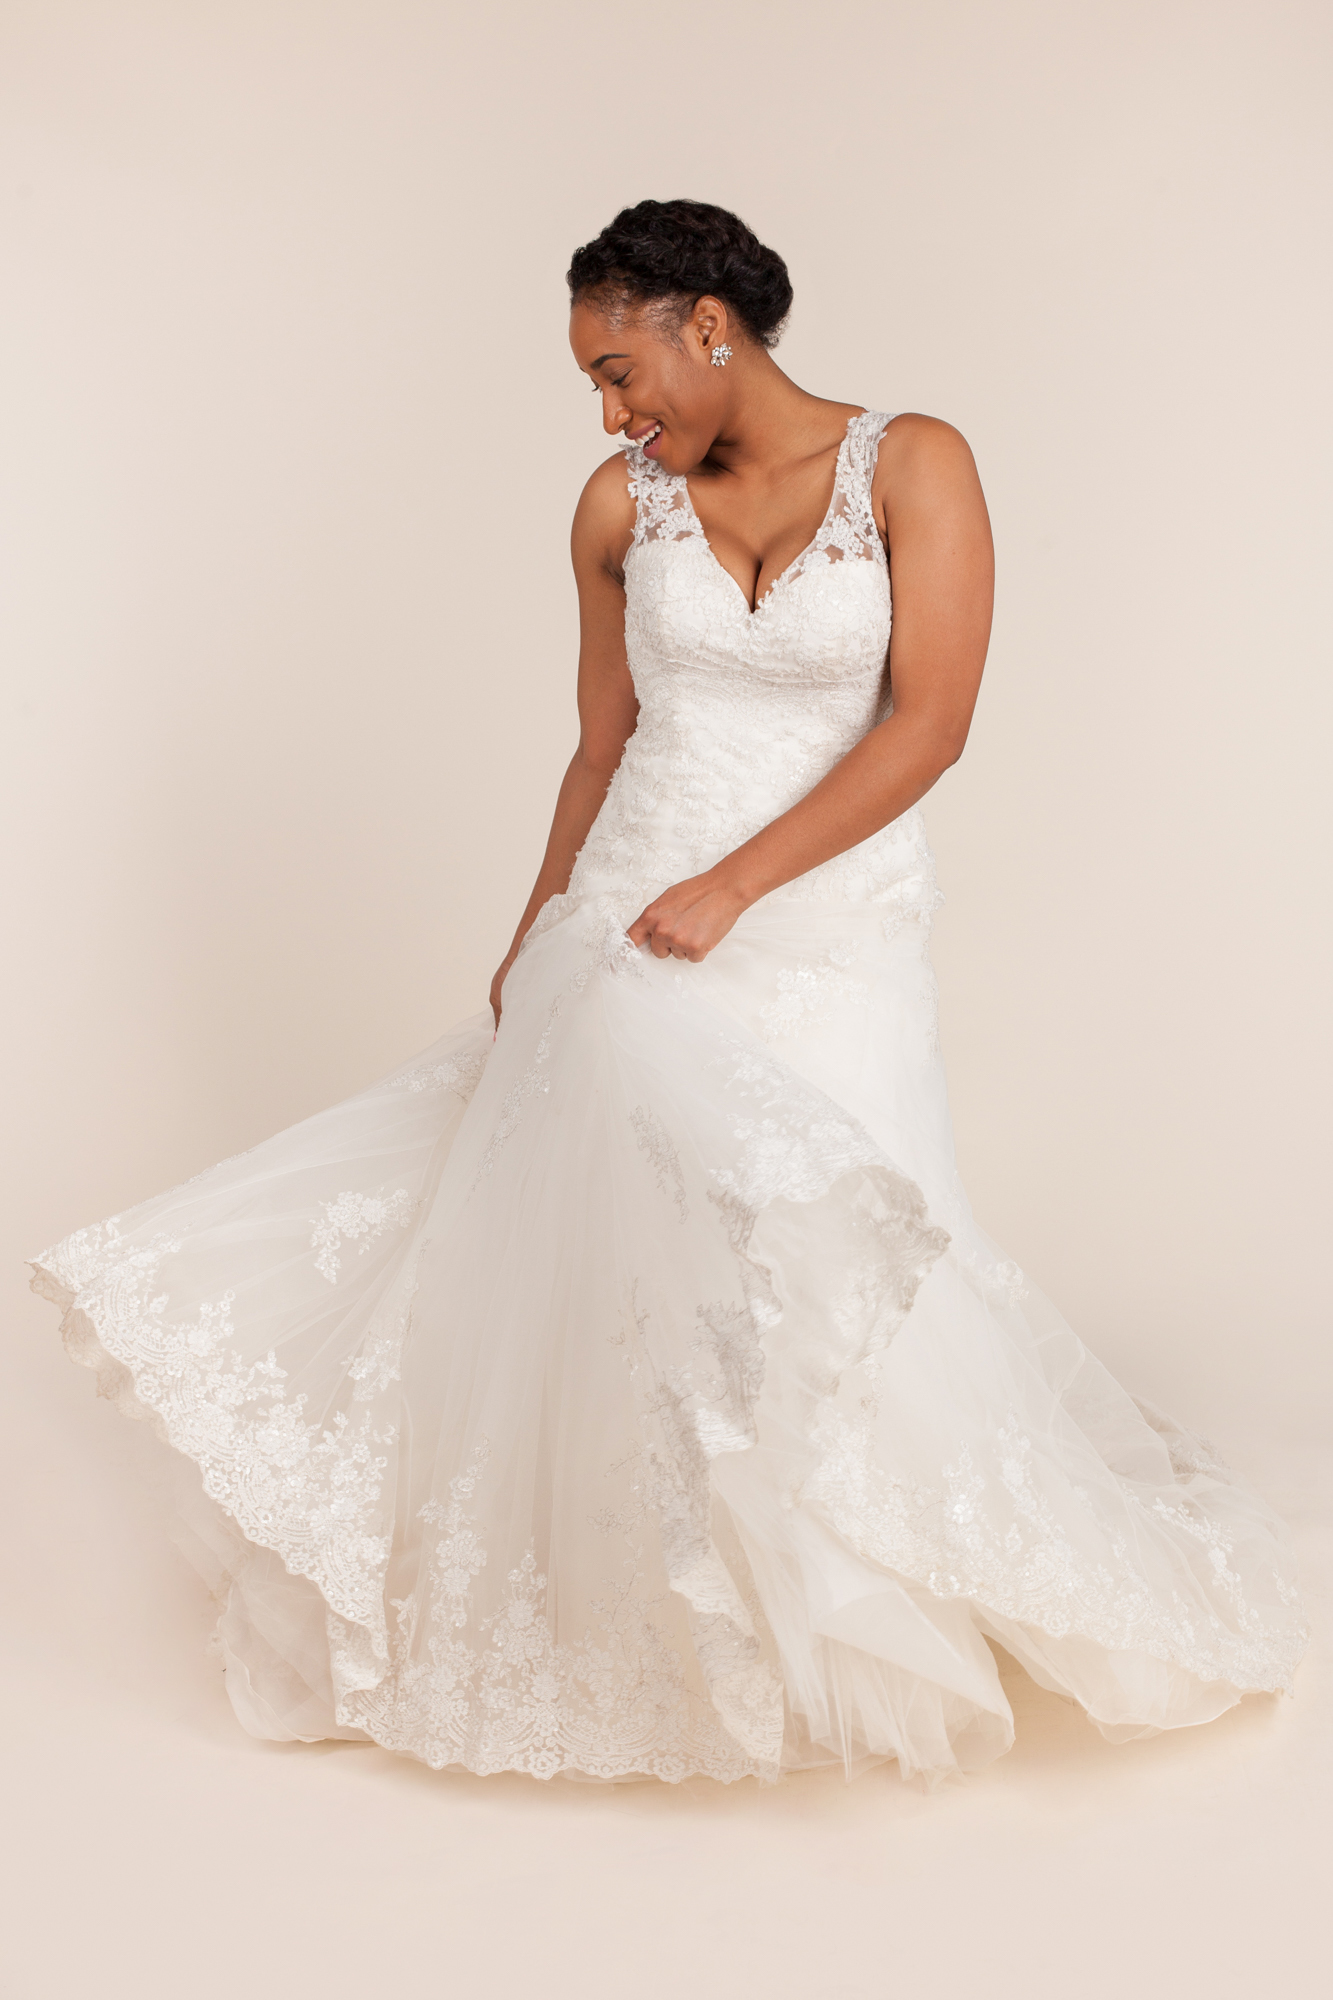 Maggie sottero - Briony size 10 - $990 - (45% OFF)